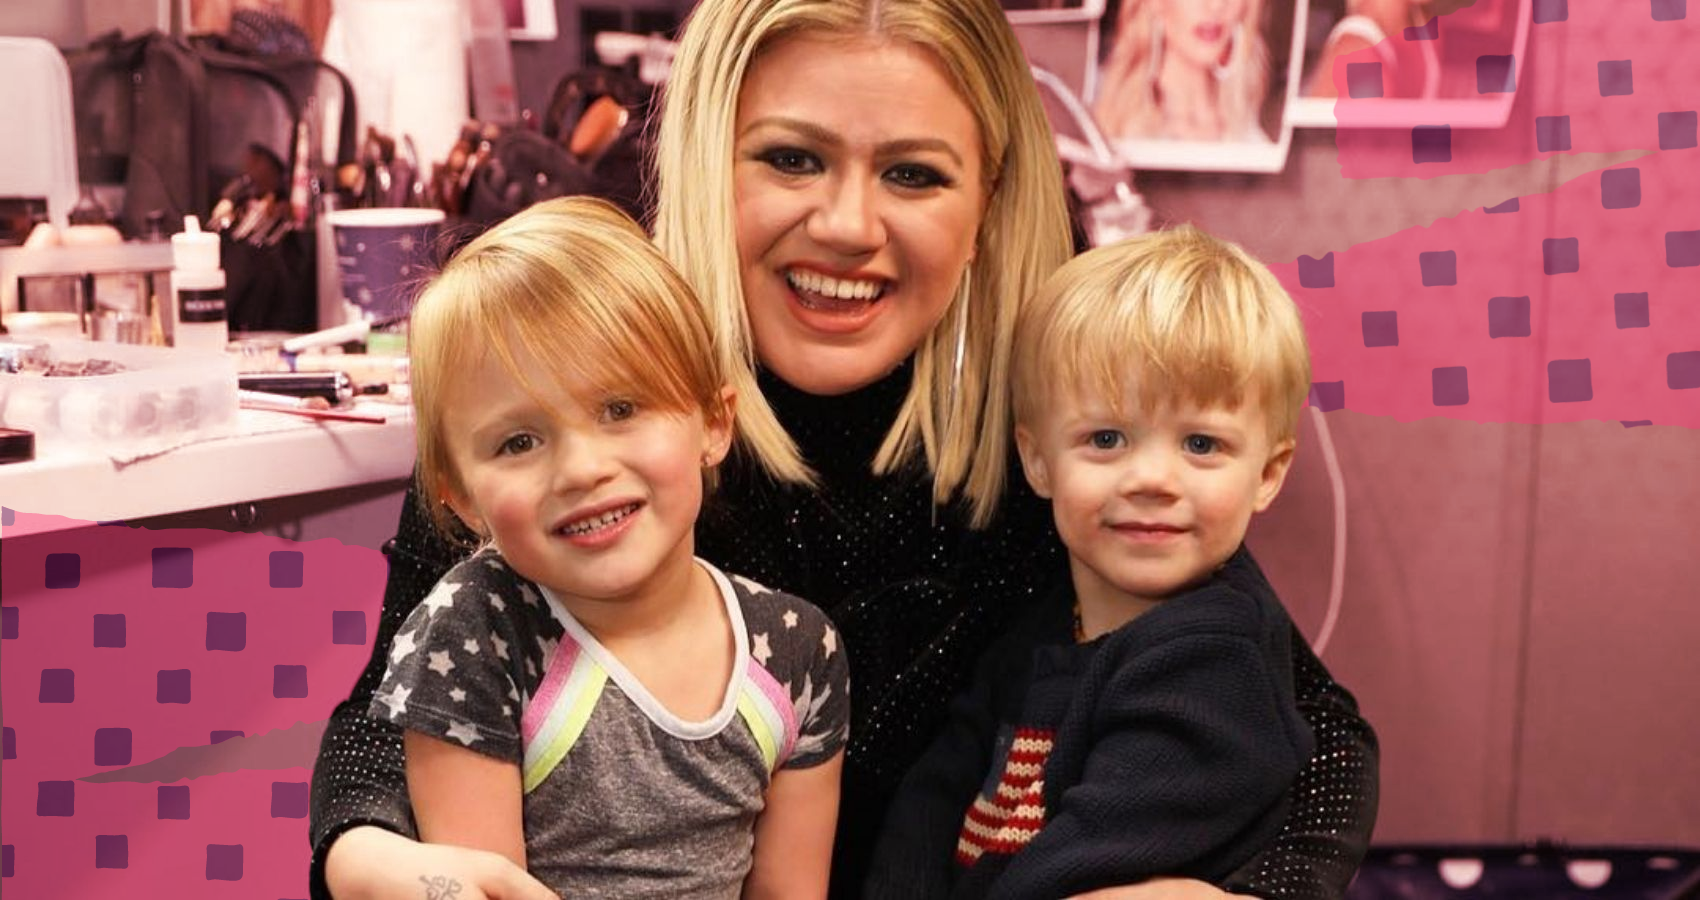 Kelly Clarkson Said Her Kid Has Trick To Get Out Of Virtual School